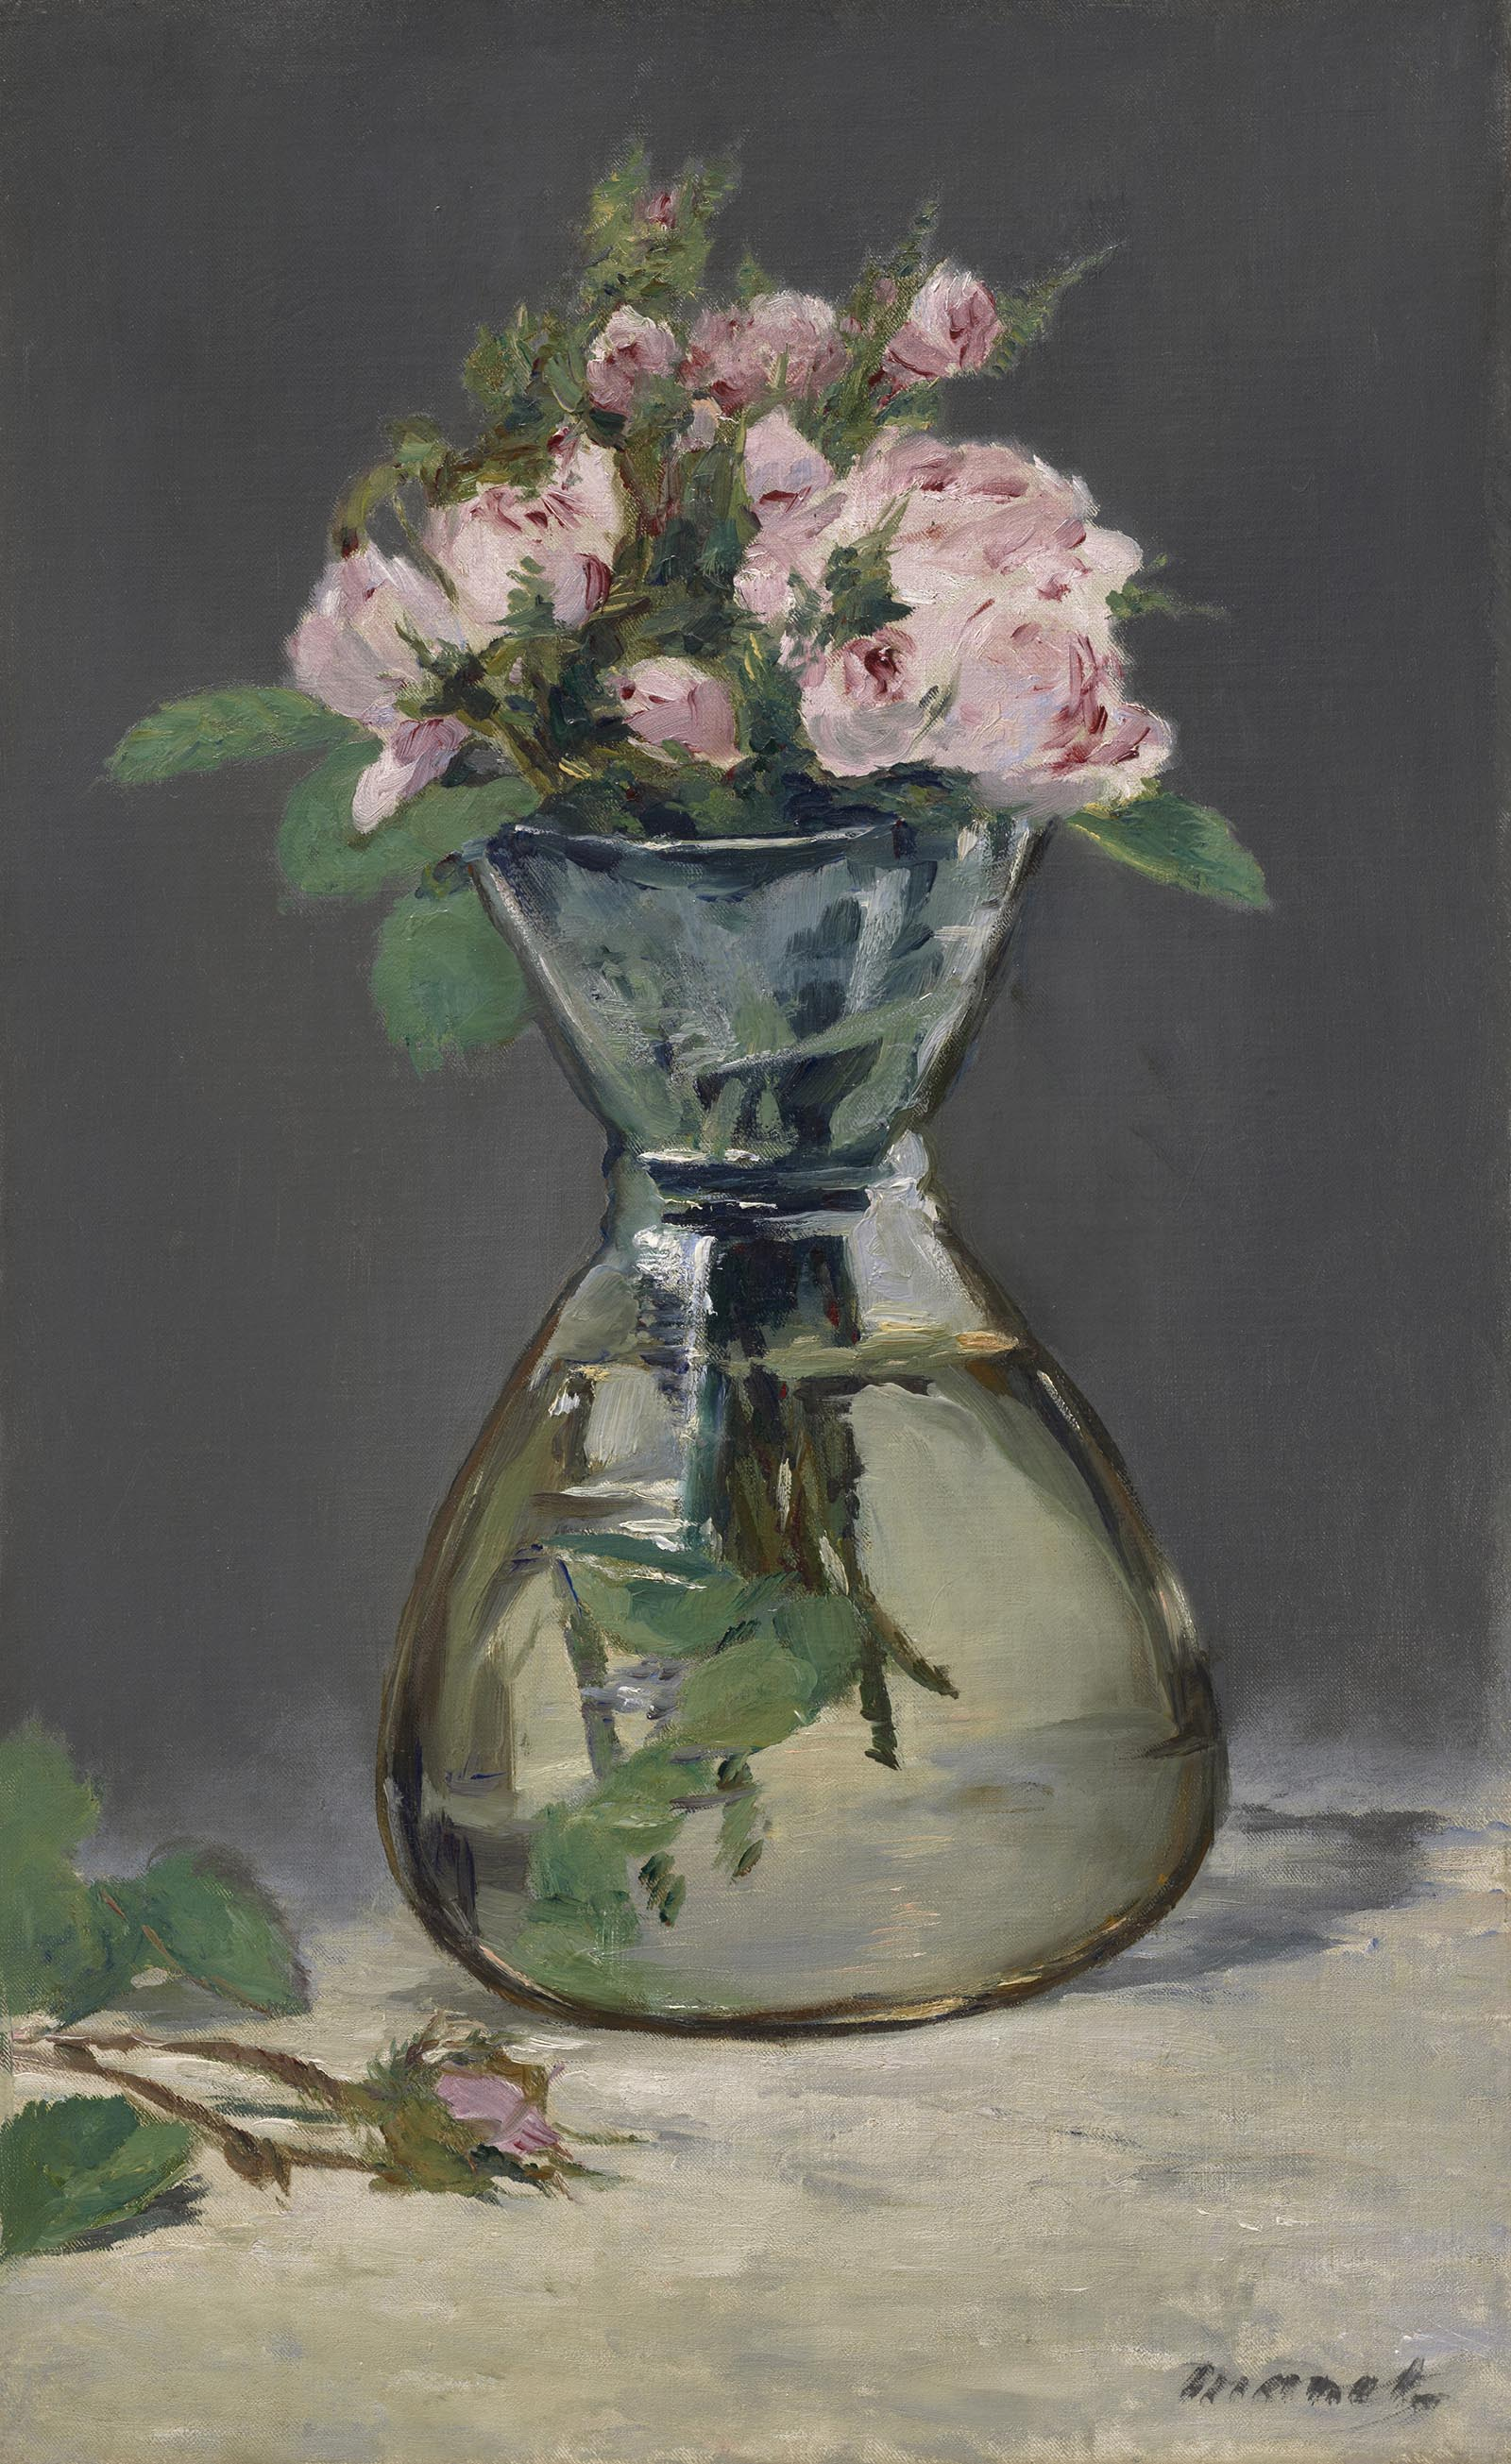 Painting of a glass vase with a tapered neck, holding soft pink flowers with long stems.